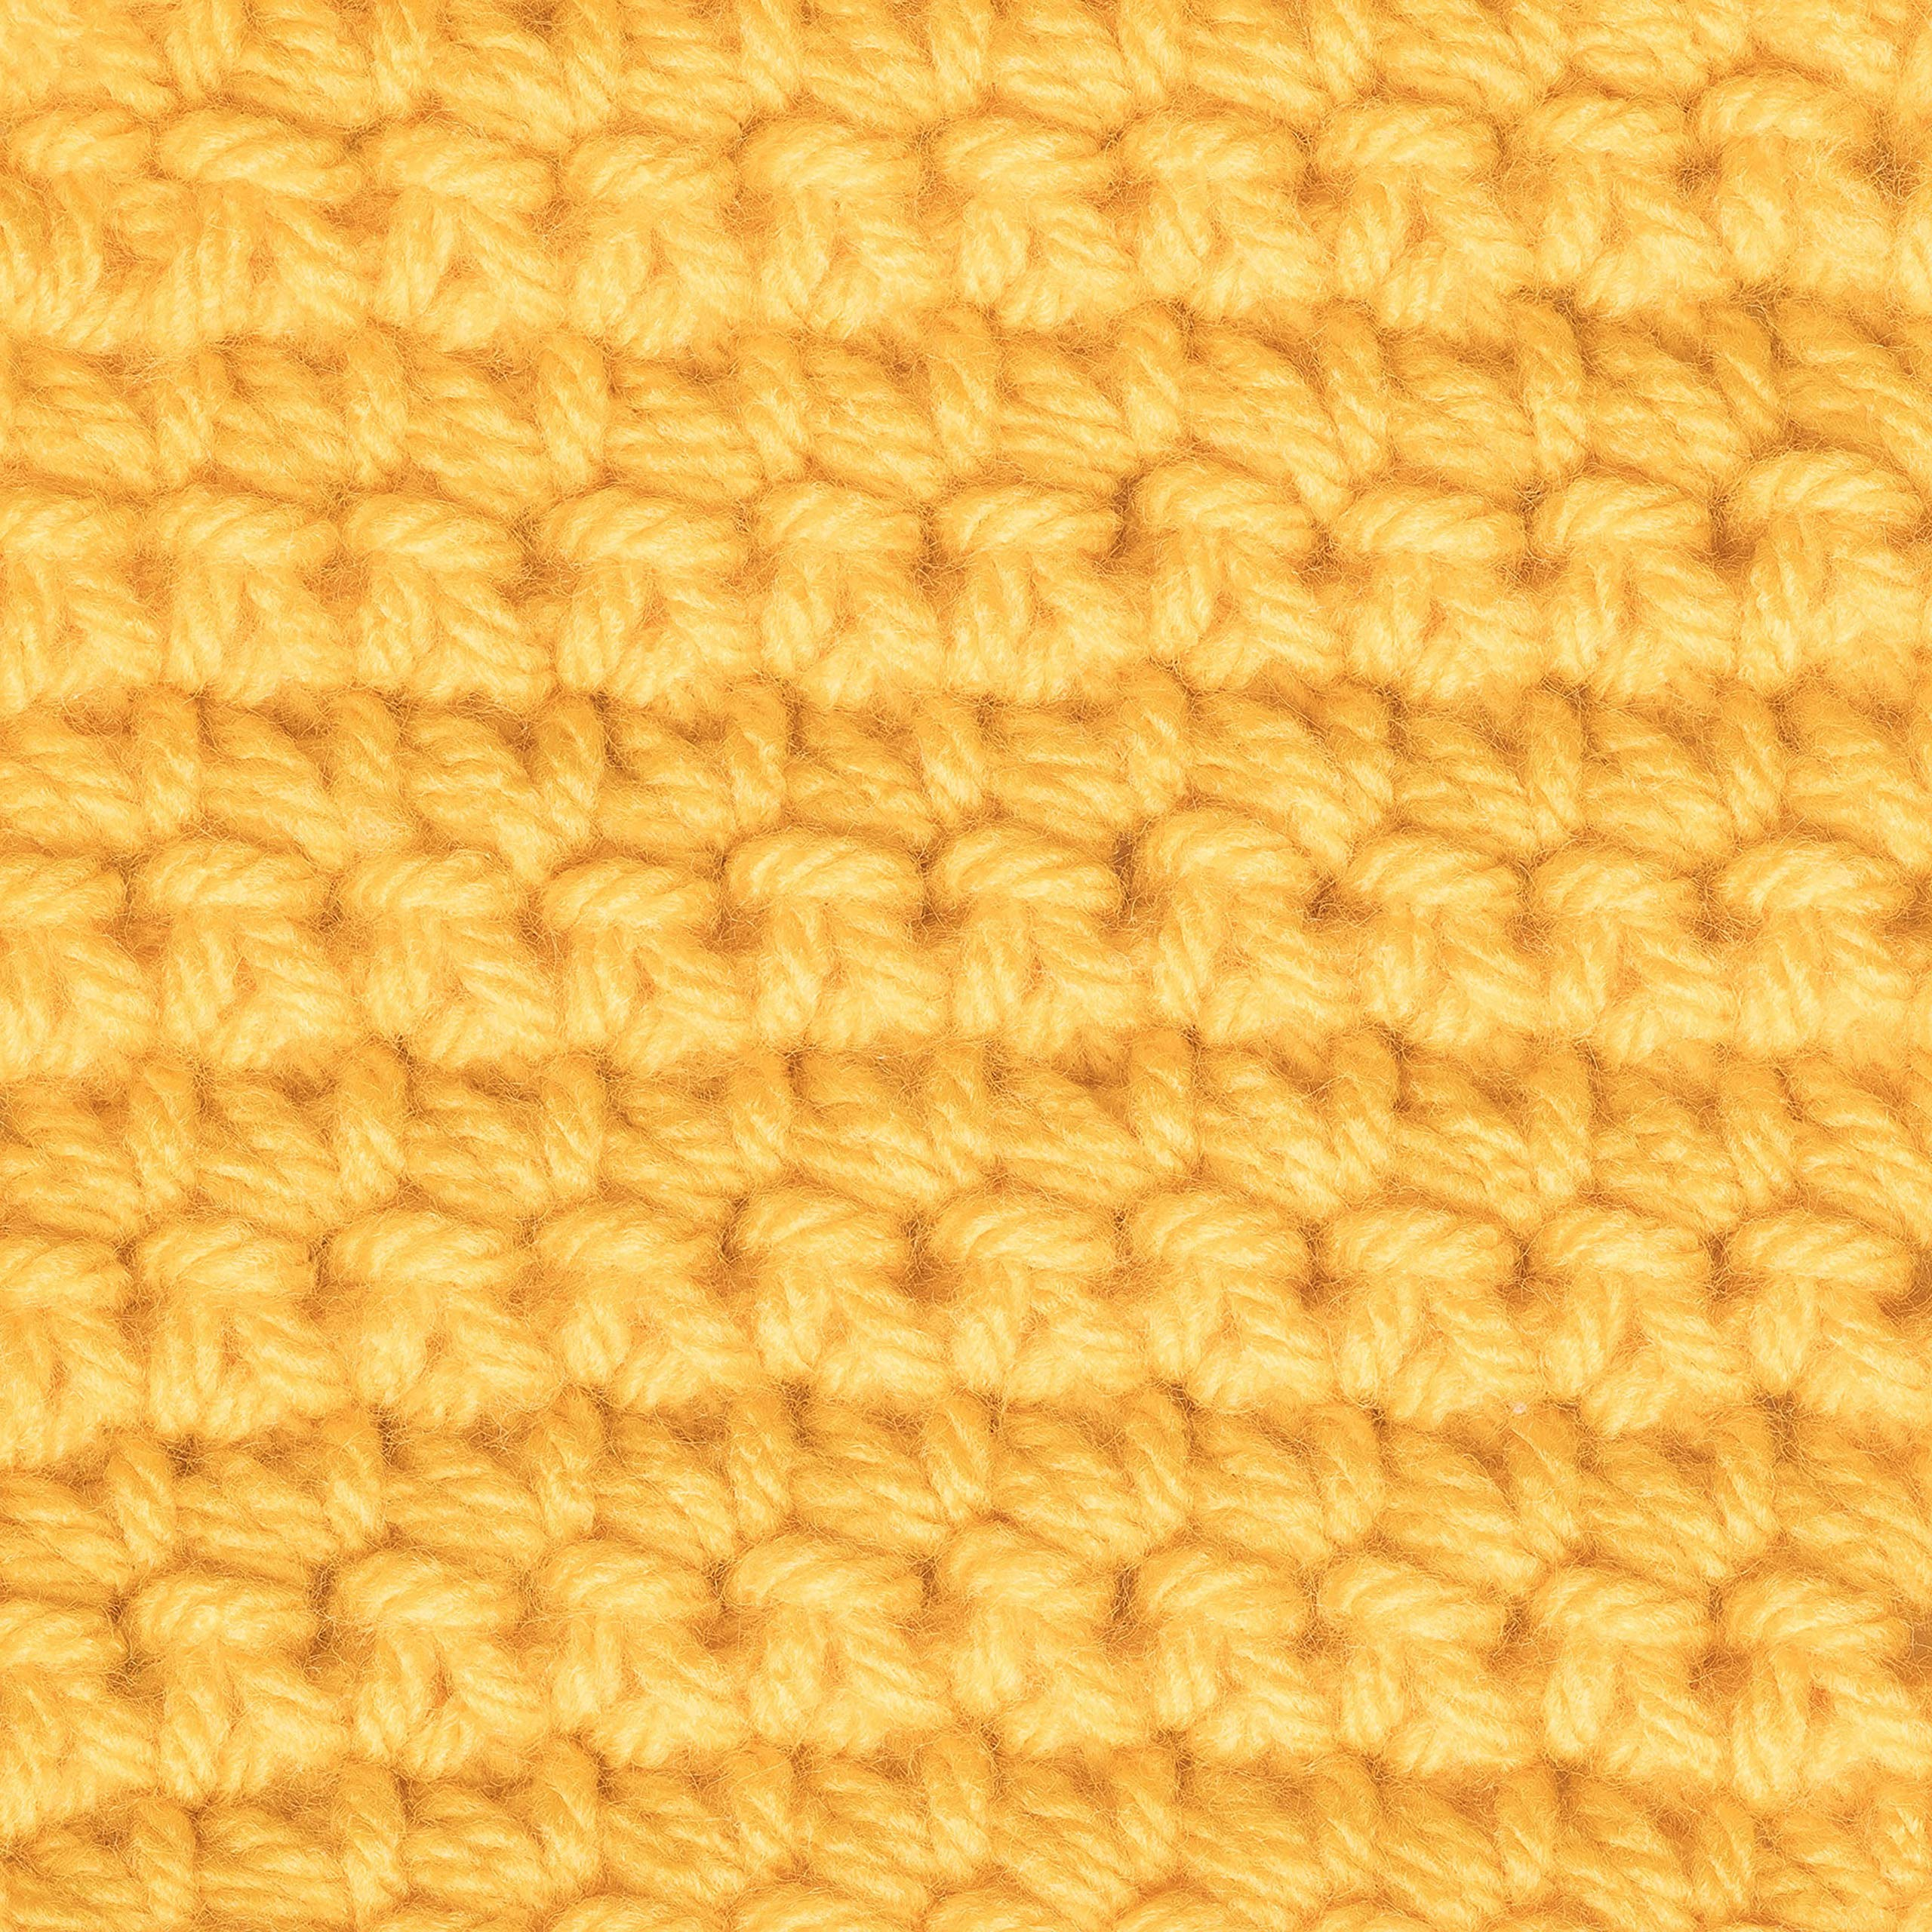 Caron 99607 One Pound Yarn-Sunflower, Multipack of 12, Pack by Caron (Image #5)